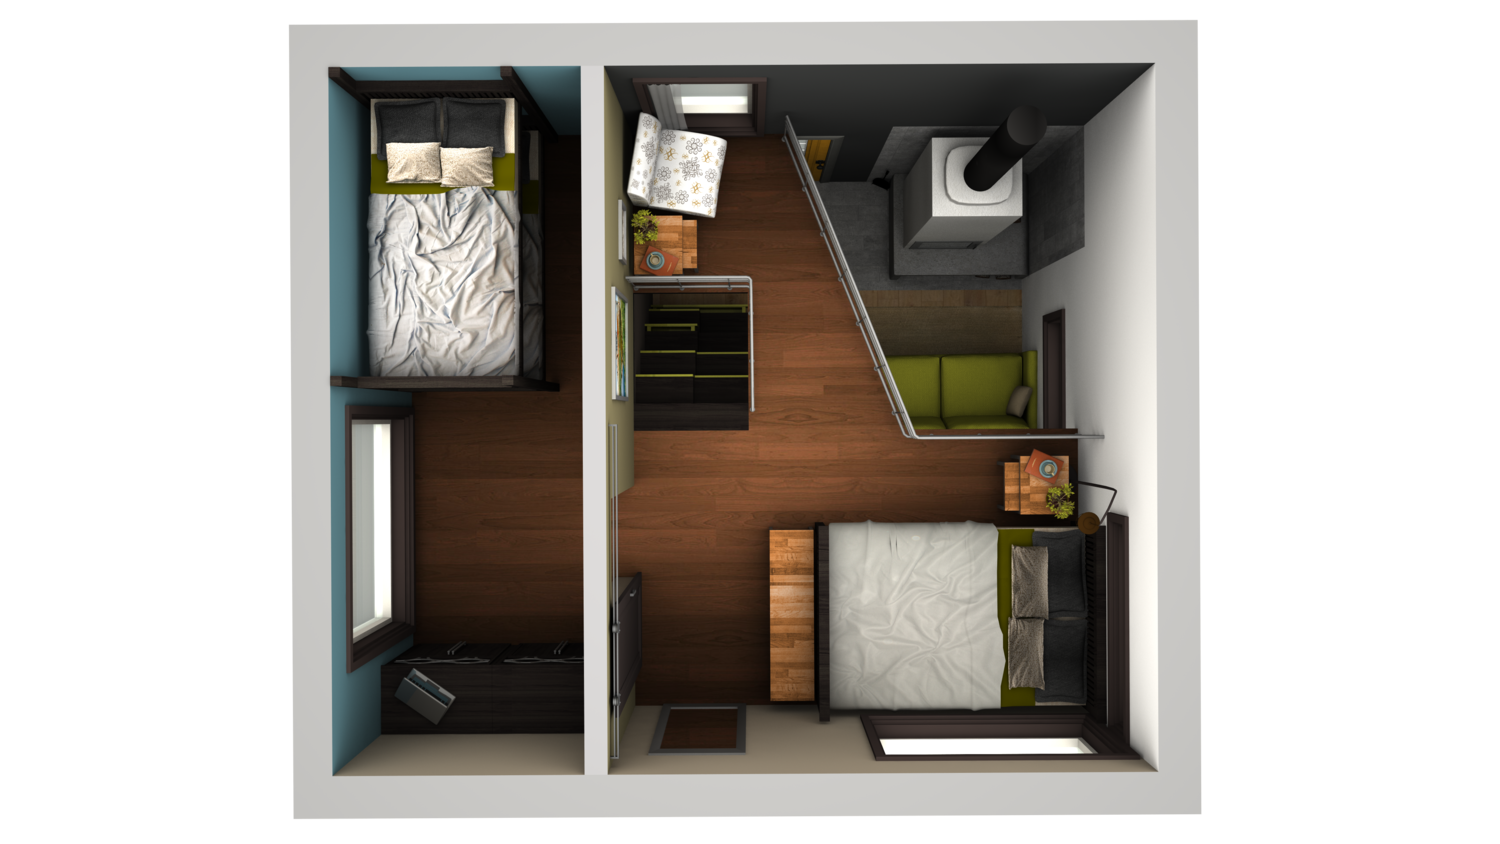 Tiny Home Design Plans: I Cannot Stop Obsessing Over This Tiny Home Design. (More